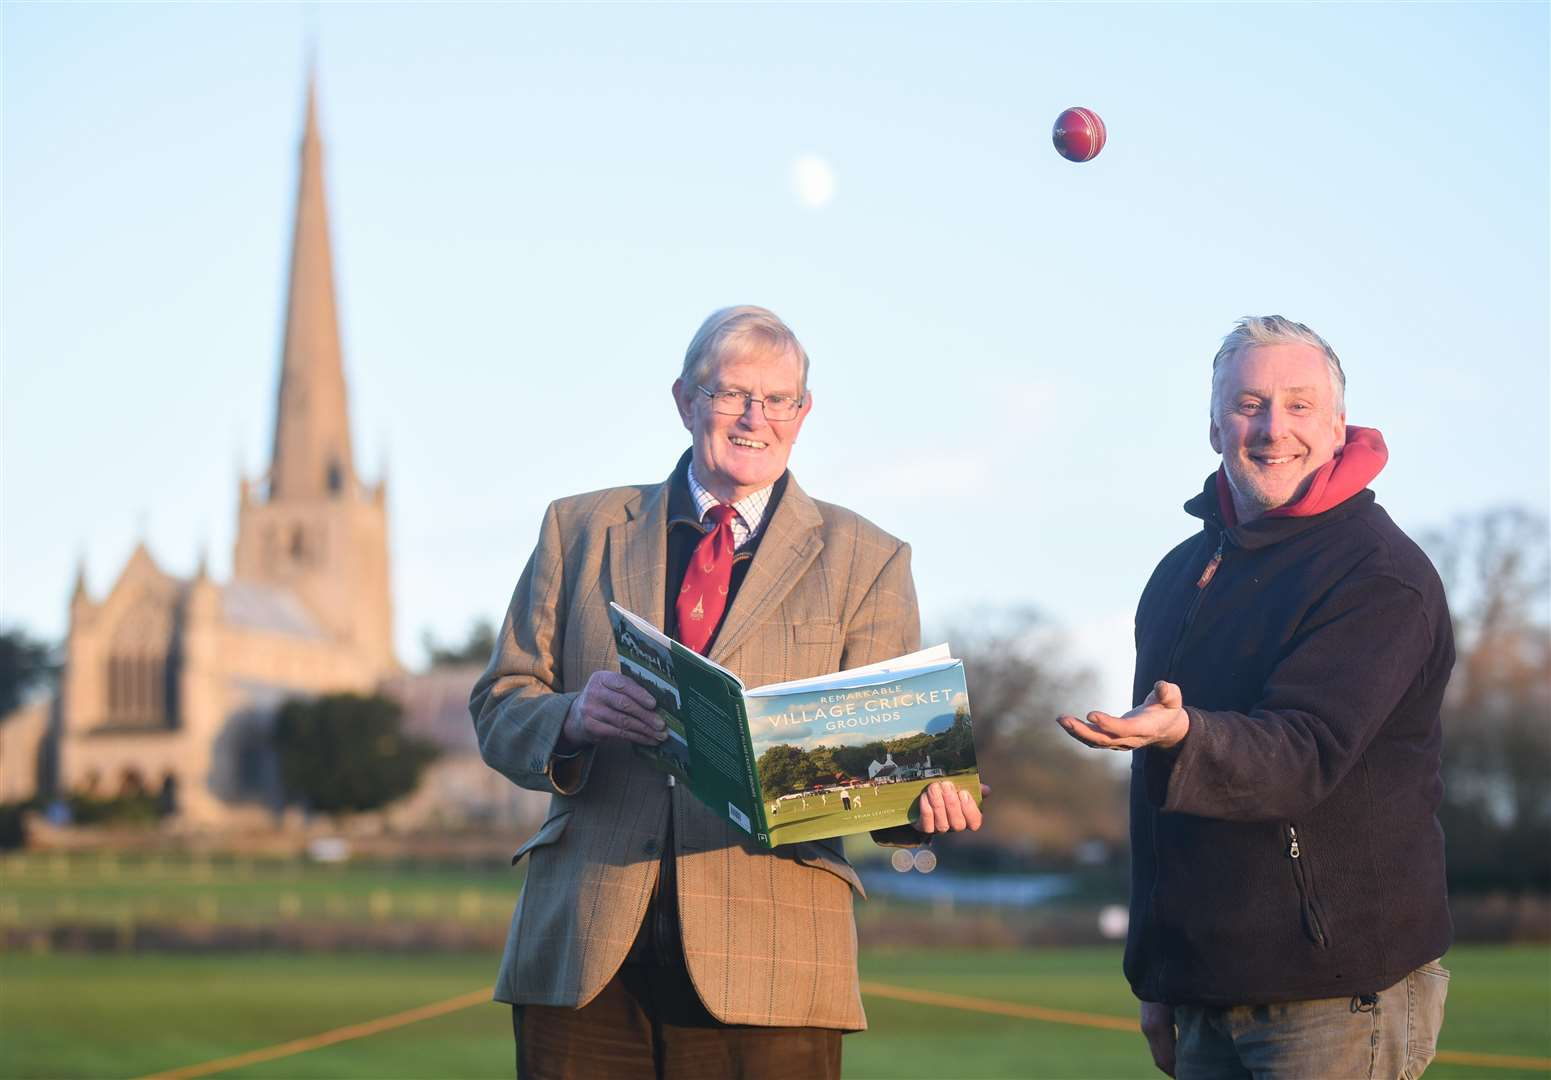 Snettisham Cricket Club has been included in a book called 'Remarkable Village Cricket Grounds'. Pictured are (L) Snettisham CC President Edward Stanton and Chairman Tim Clarey.